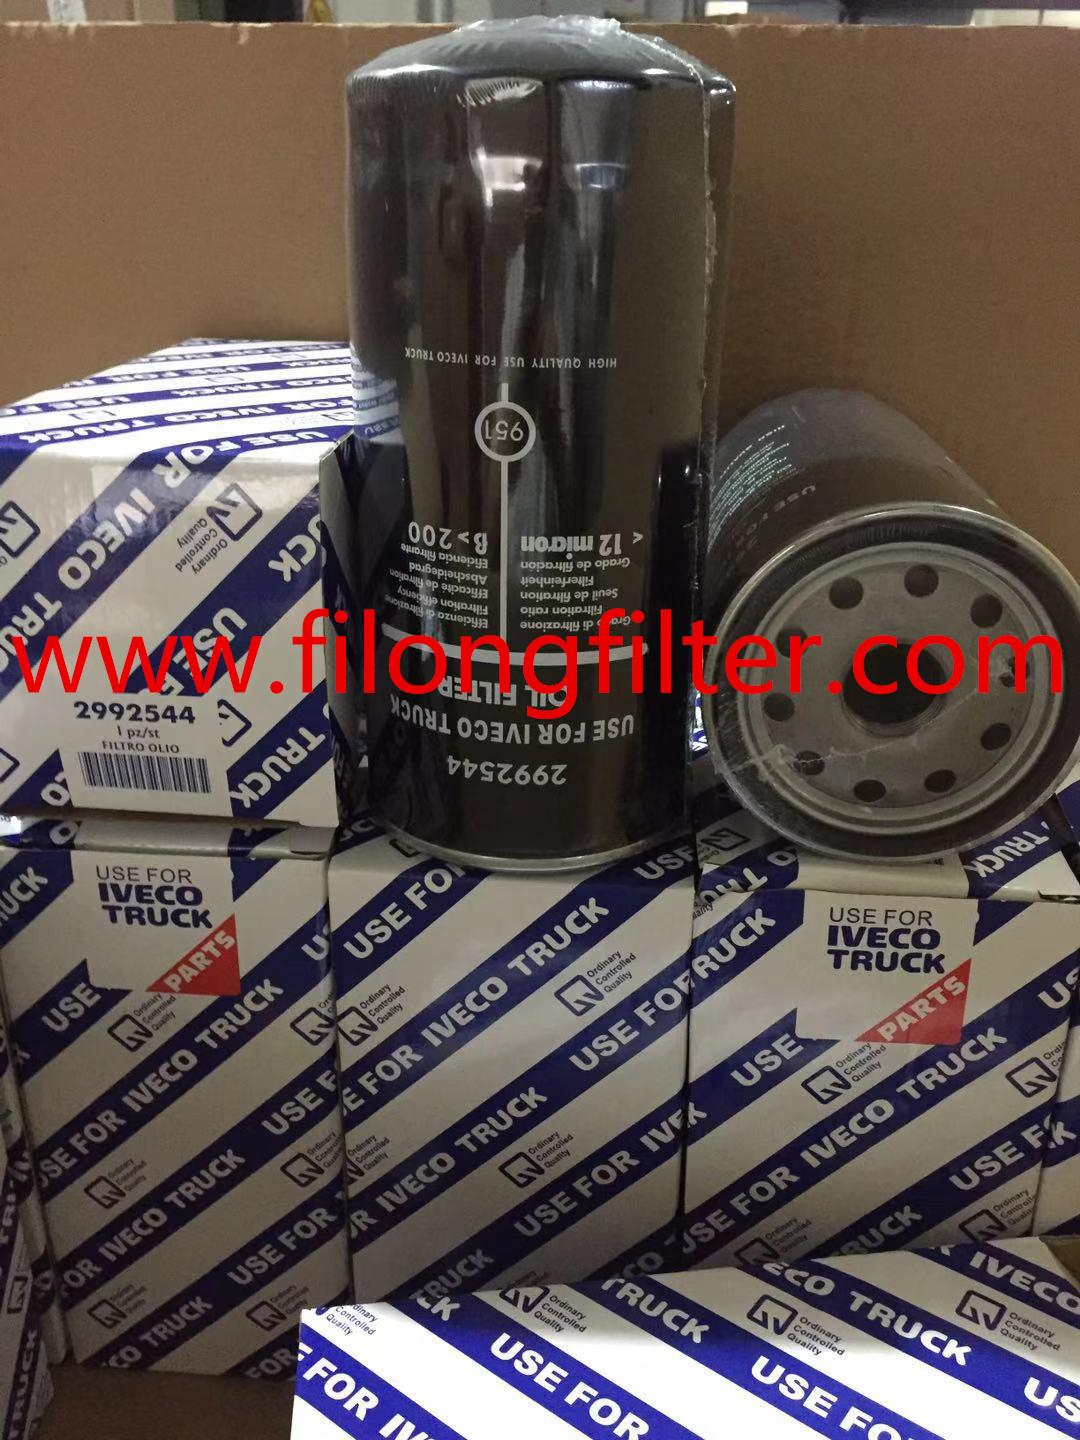 FILONG Manufactory Supplier For IVECO Truck Oil filter 2992544 504026056   1